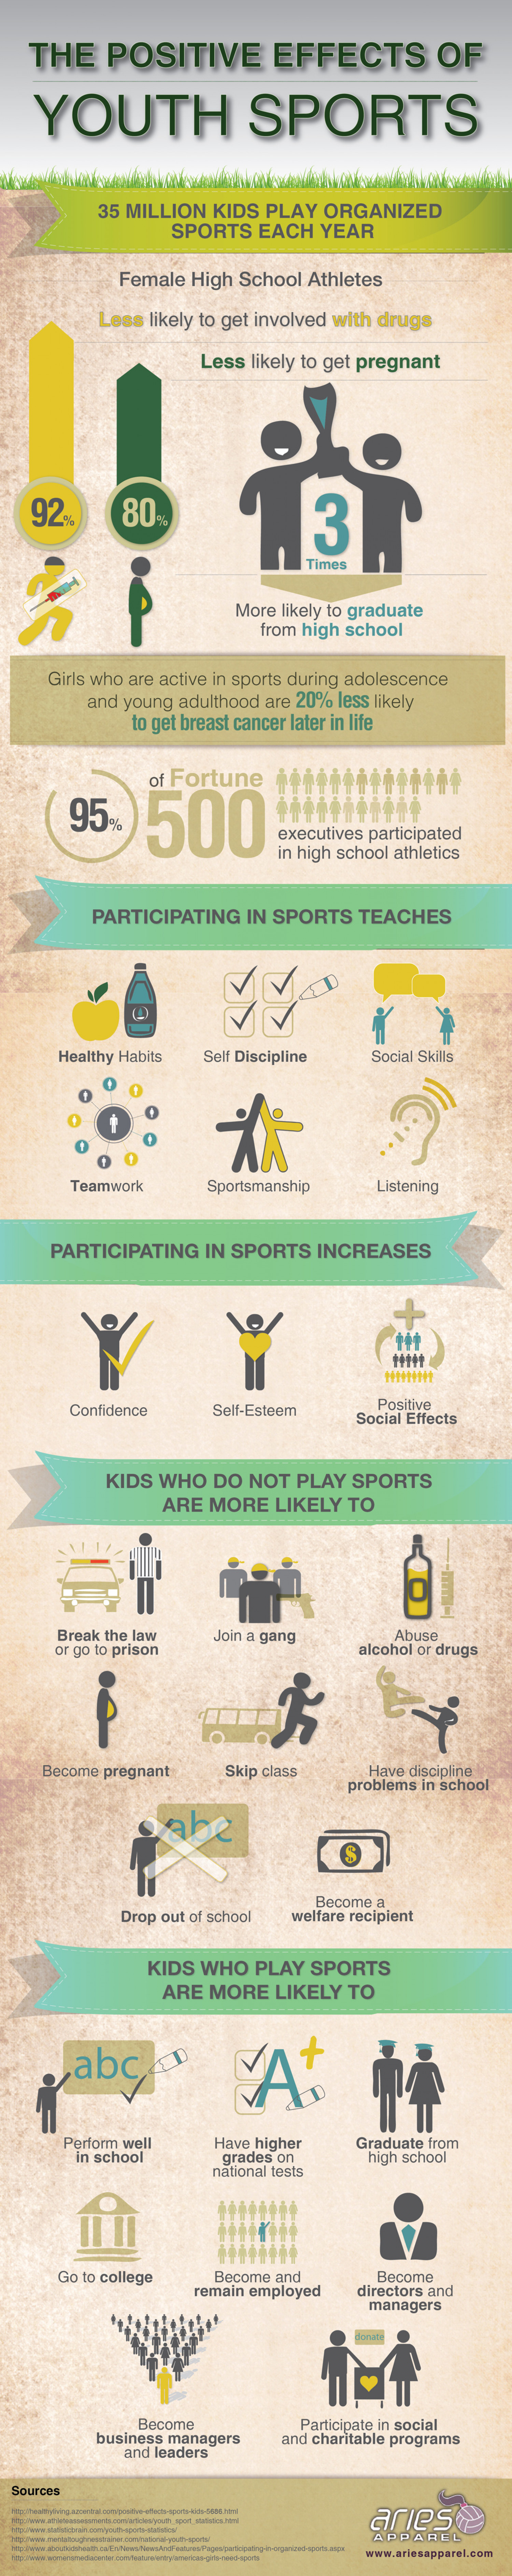 The Positive Effects of Youth Sports  Infographic